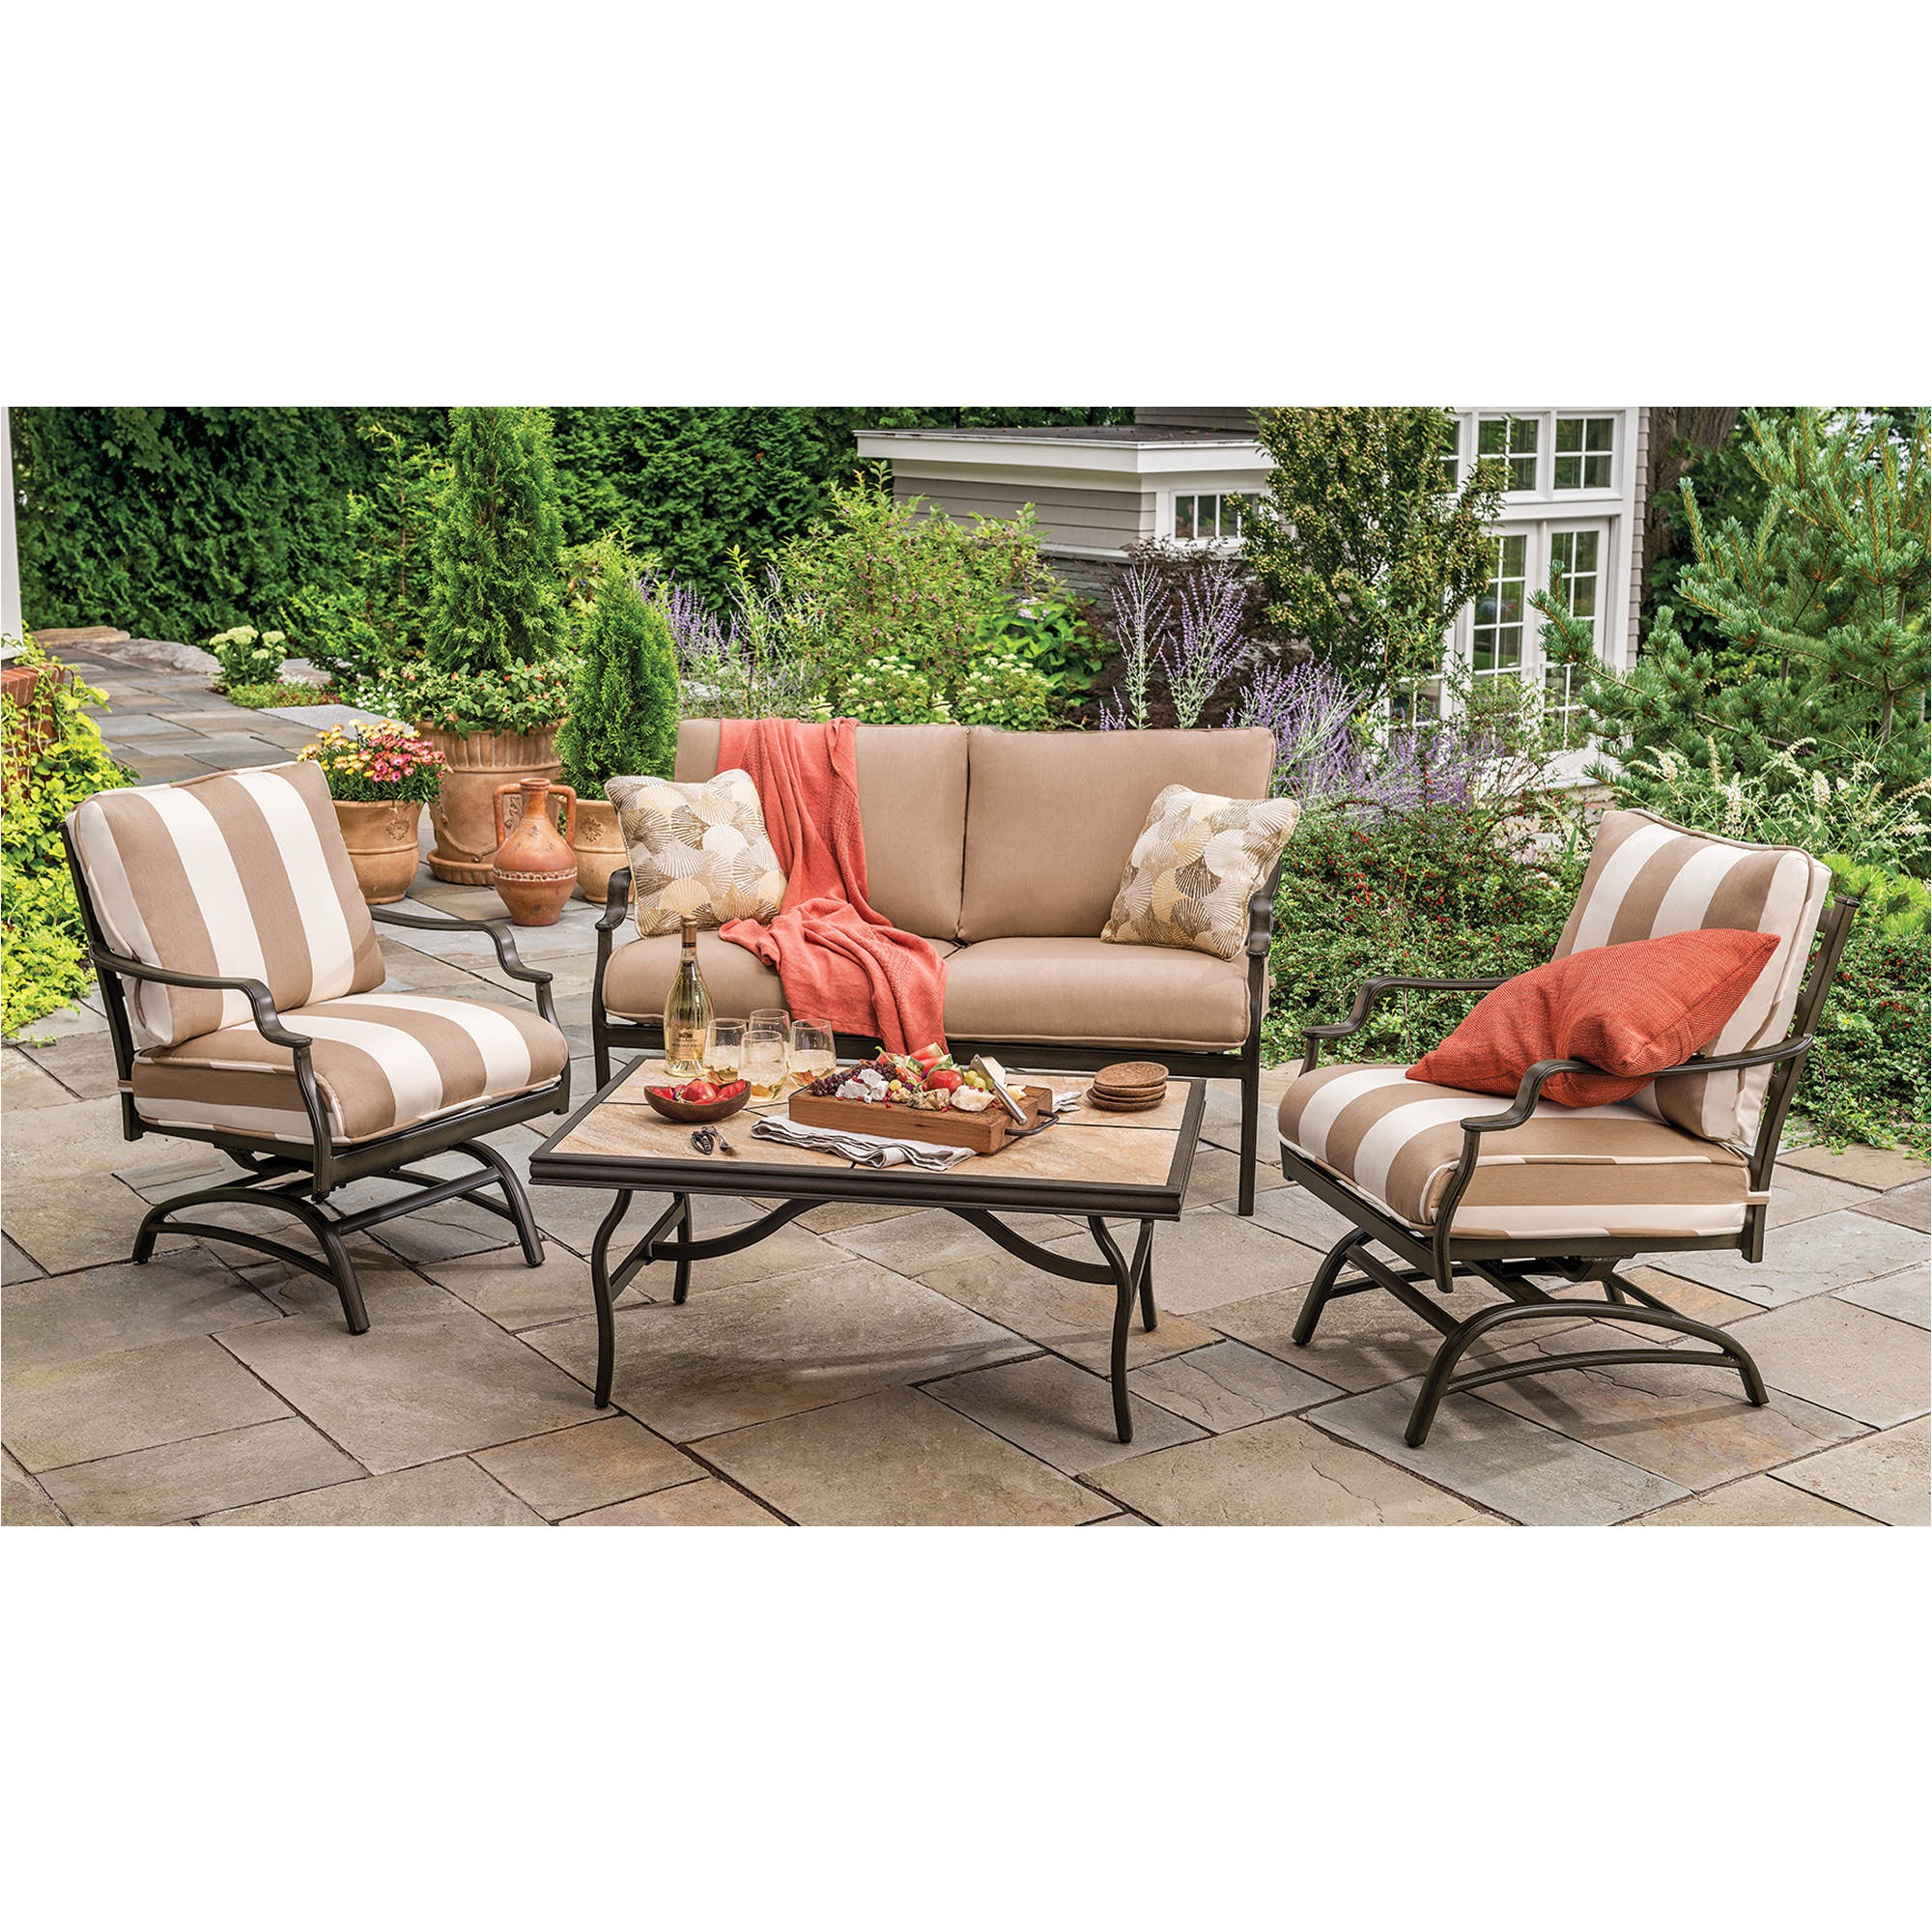 berkley jensen trevi 4 pc deep seating patio set product 282443